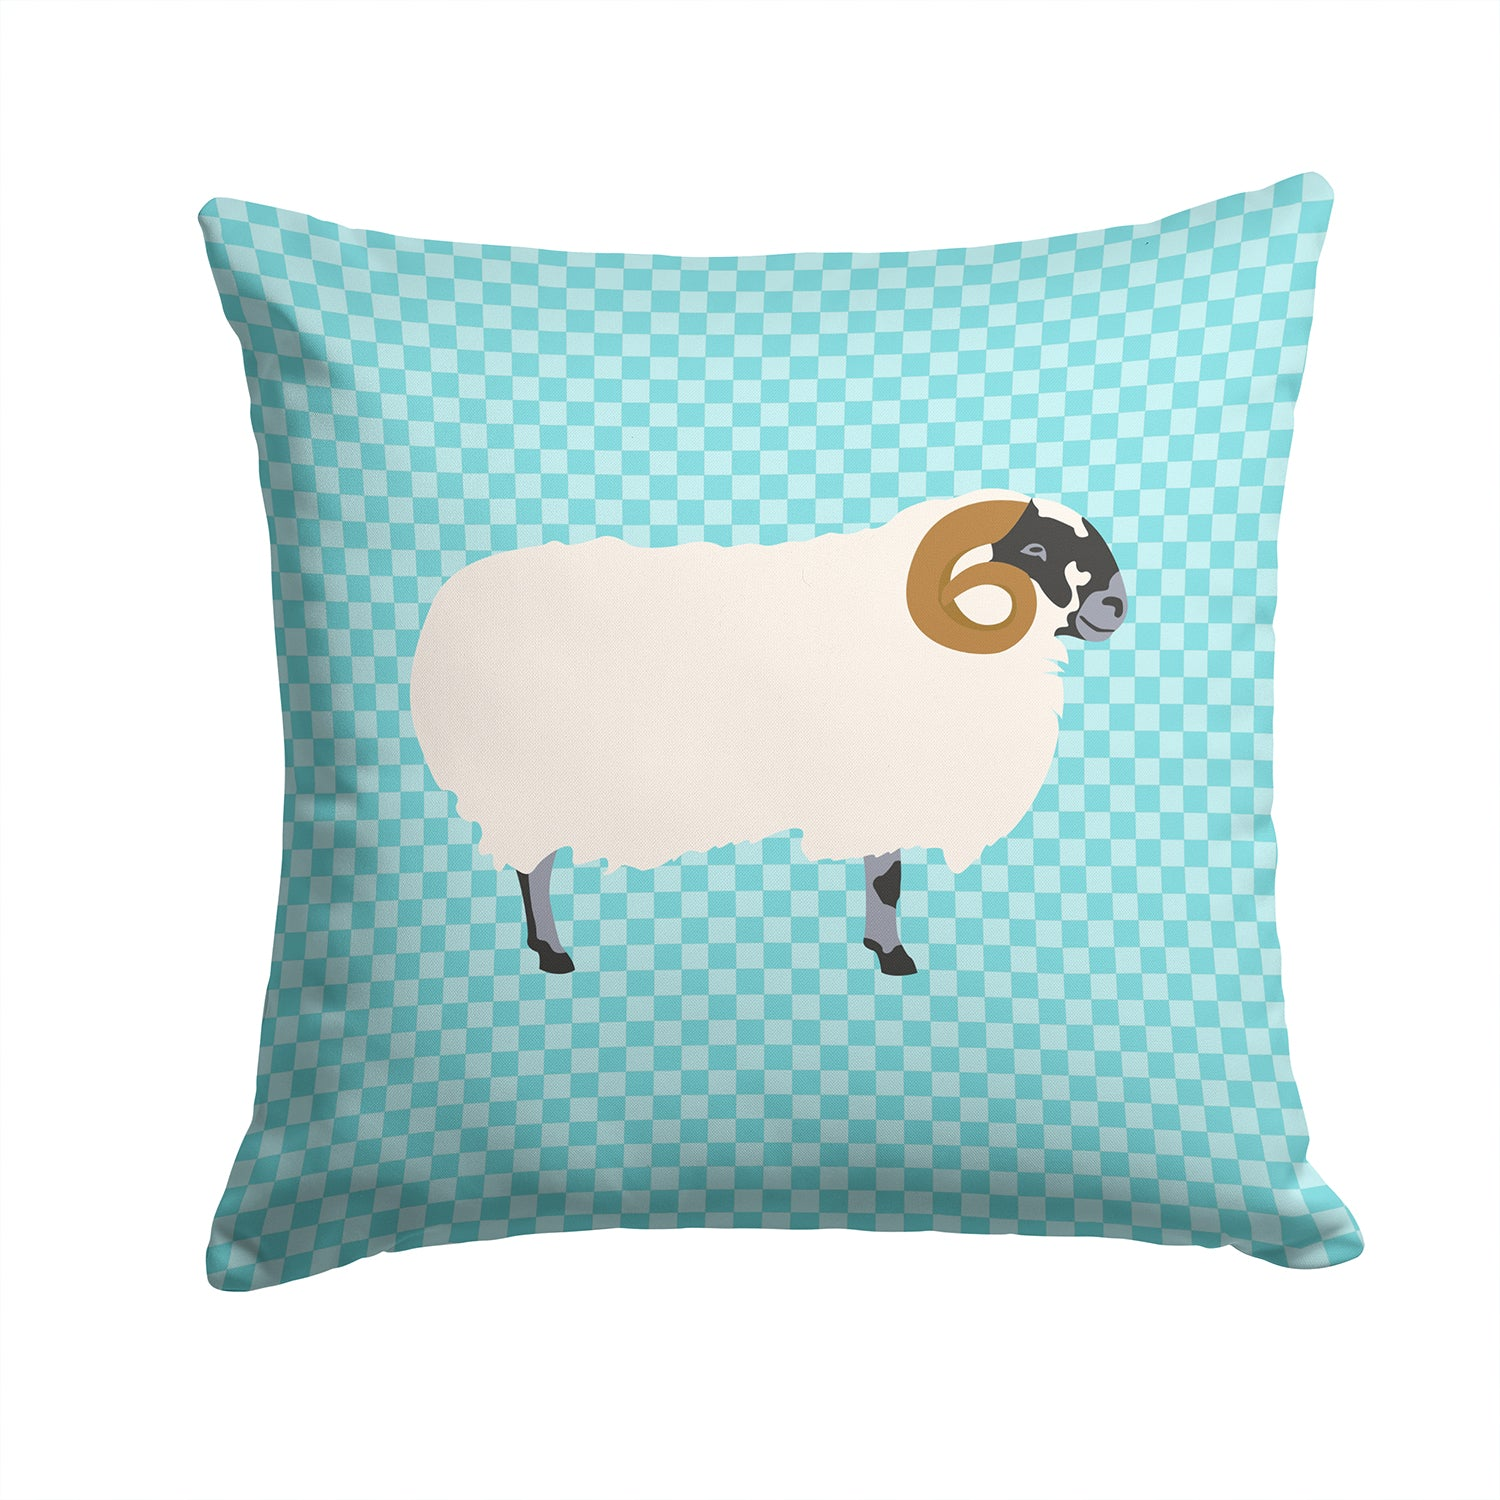 Scottish Blackface Sheep Blue Check Fabric Decorative Pillow BB8147PW1414 by Caroline's Treasures